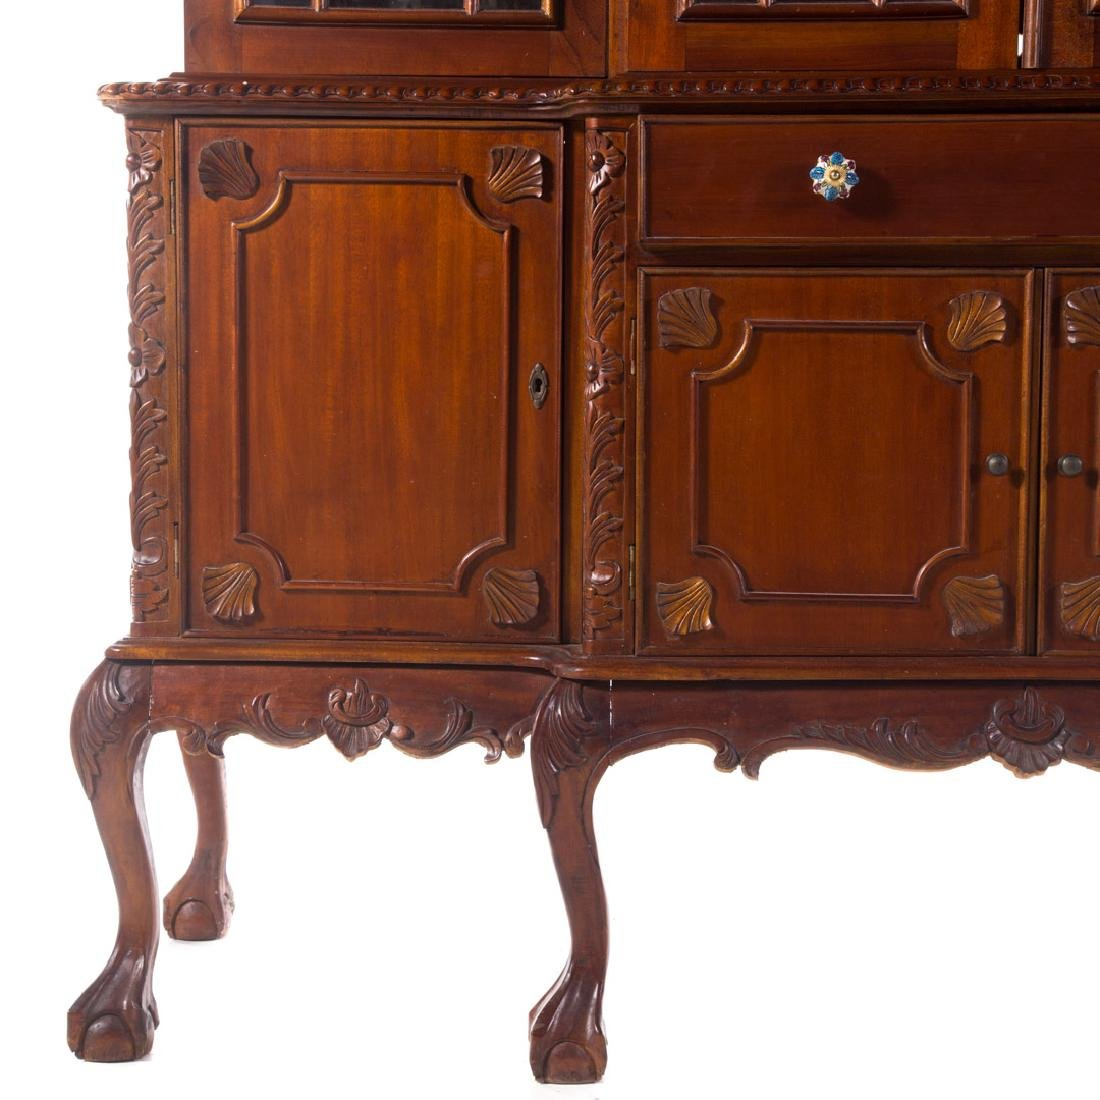 Chippendale style mahogany breakfront - 3